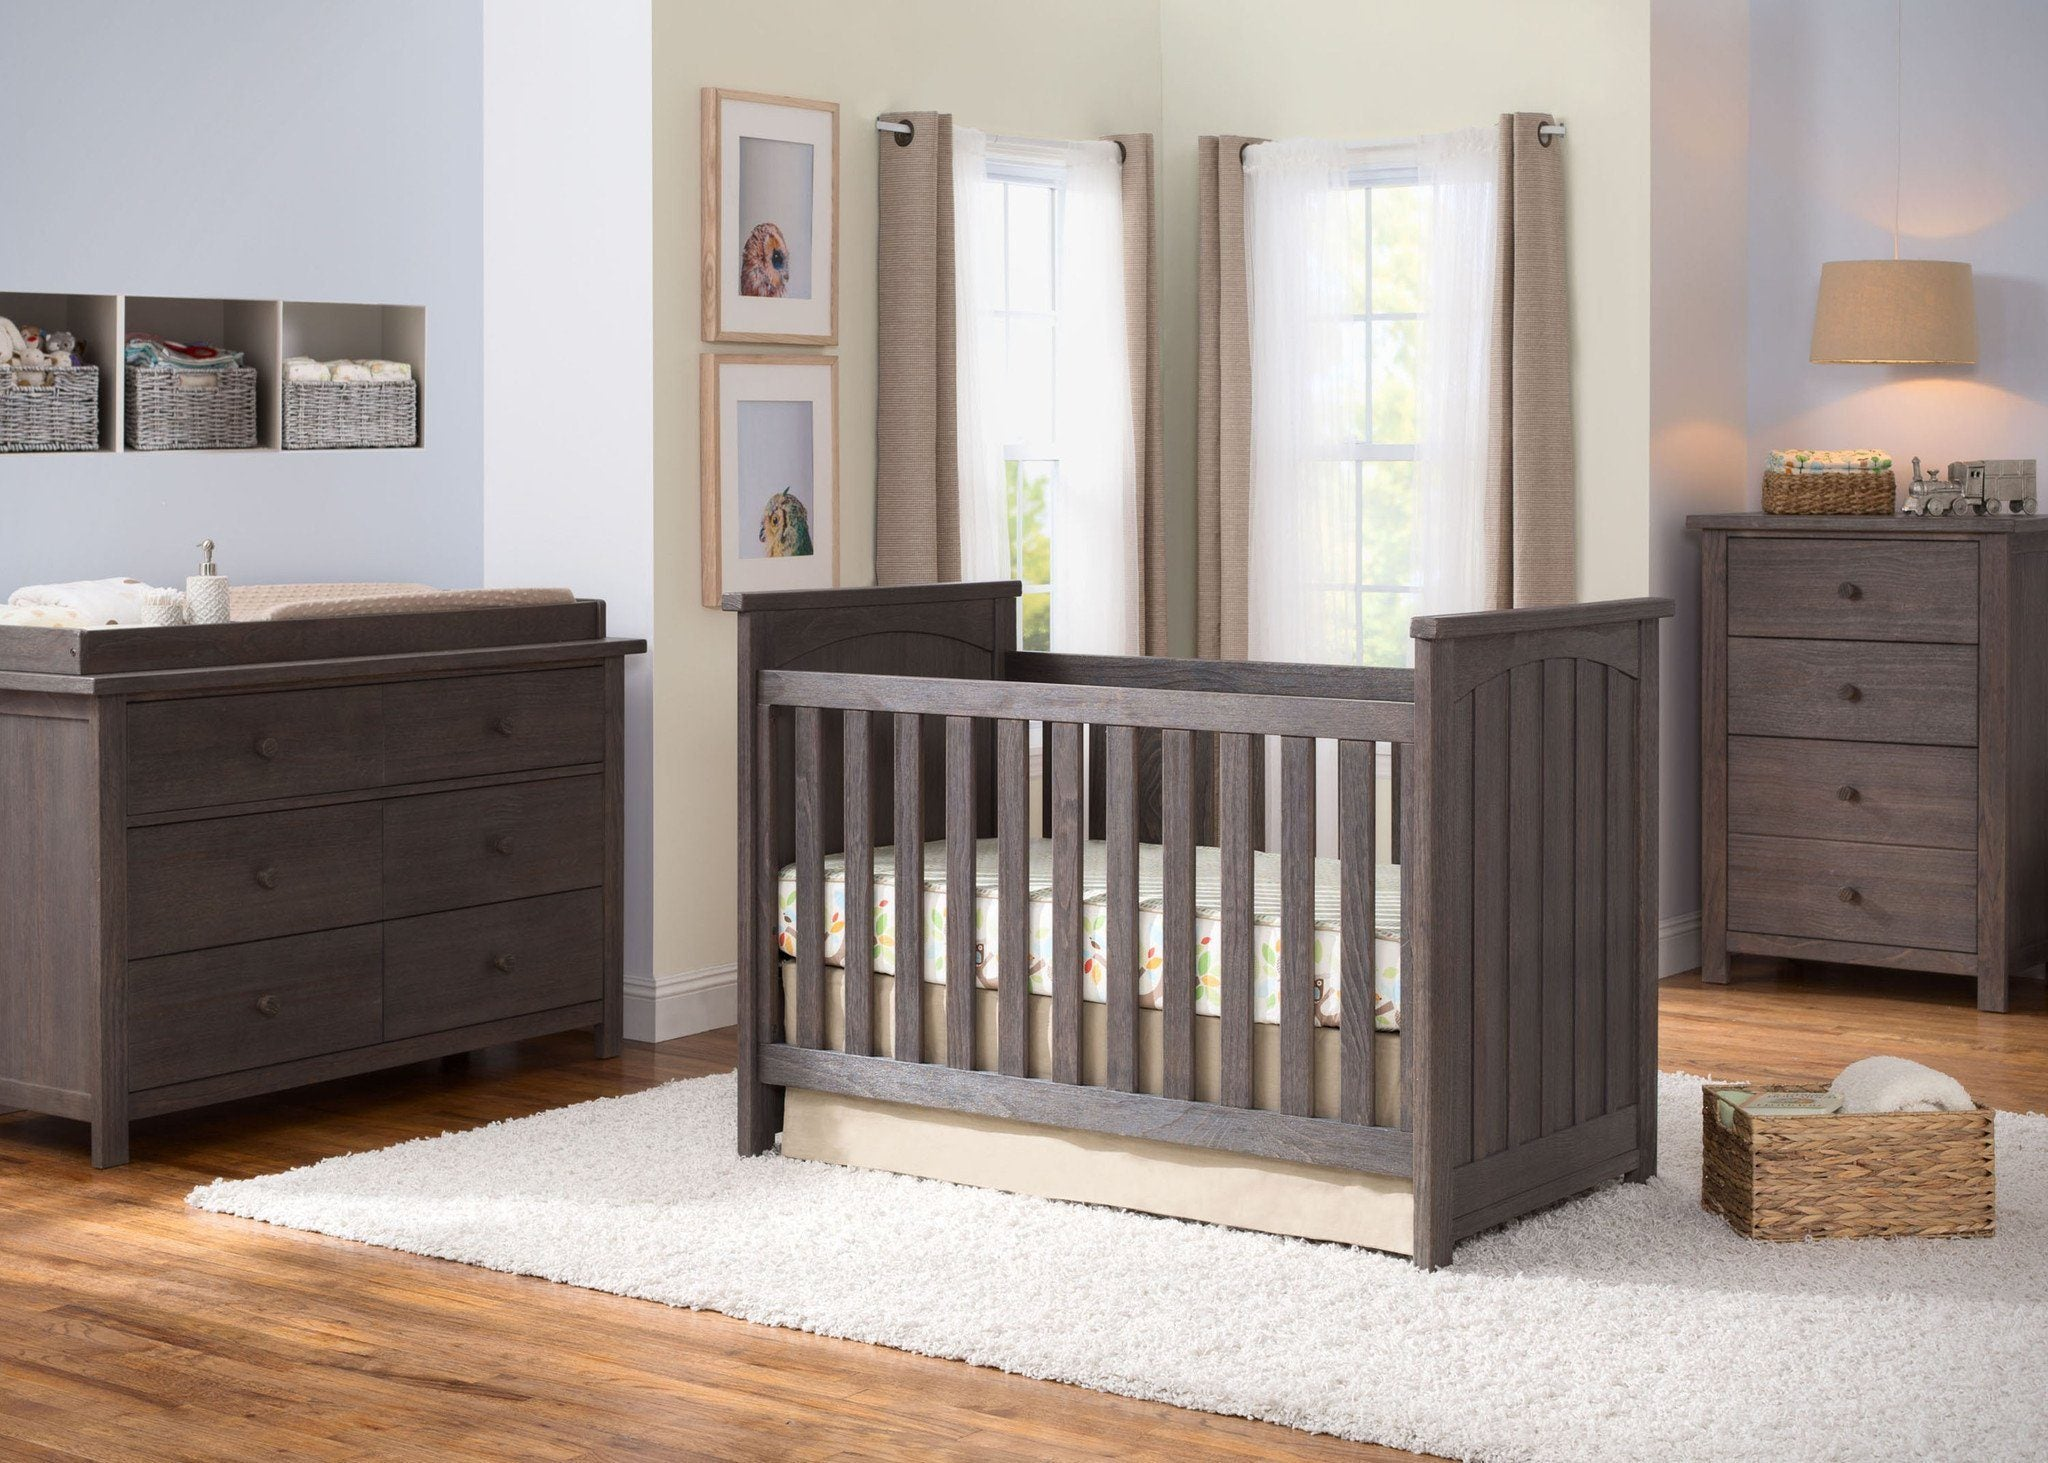 Serta Rustic Grey (084) Northbrook 3-in-1 Crib in Setting a1a